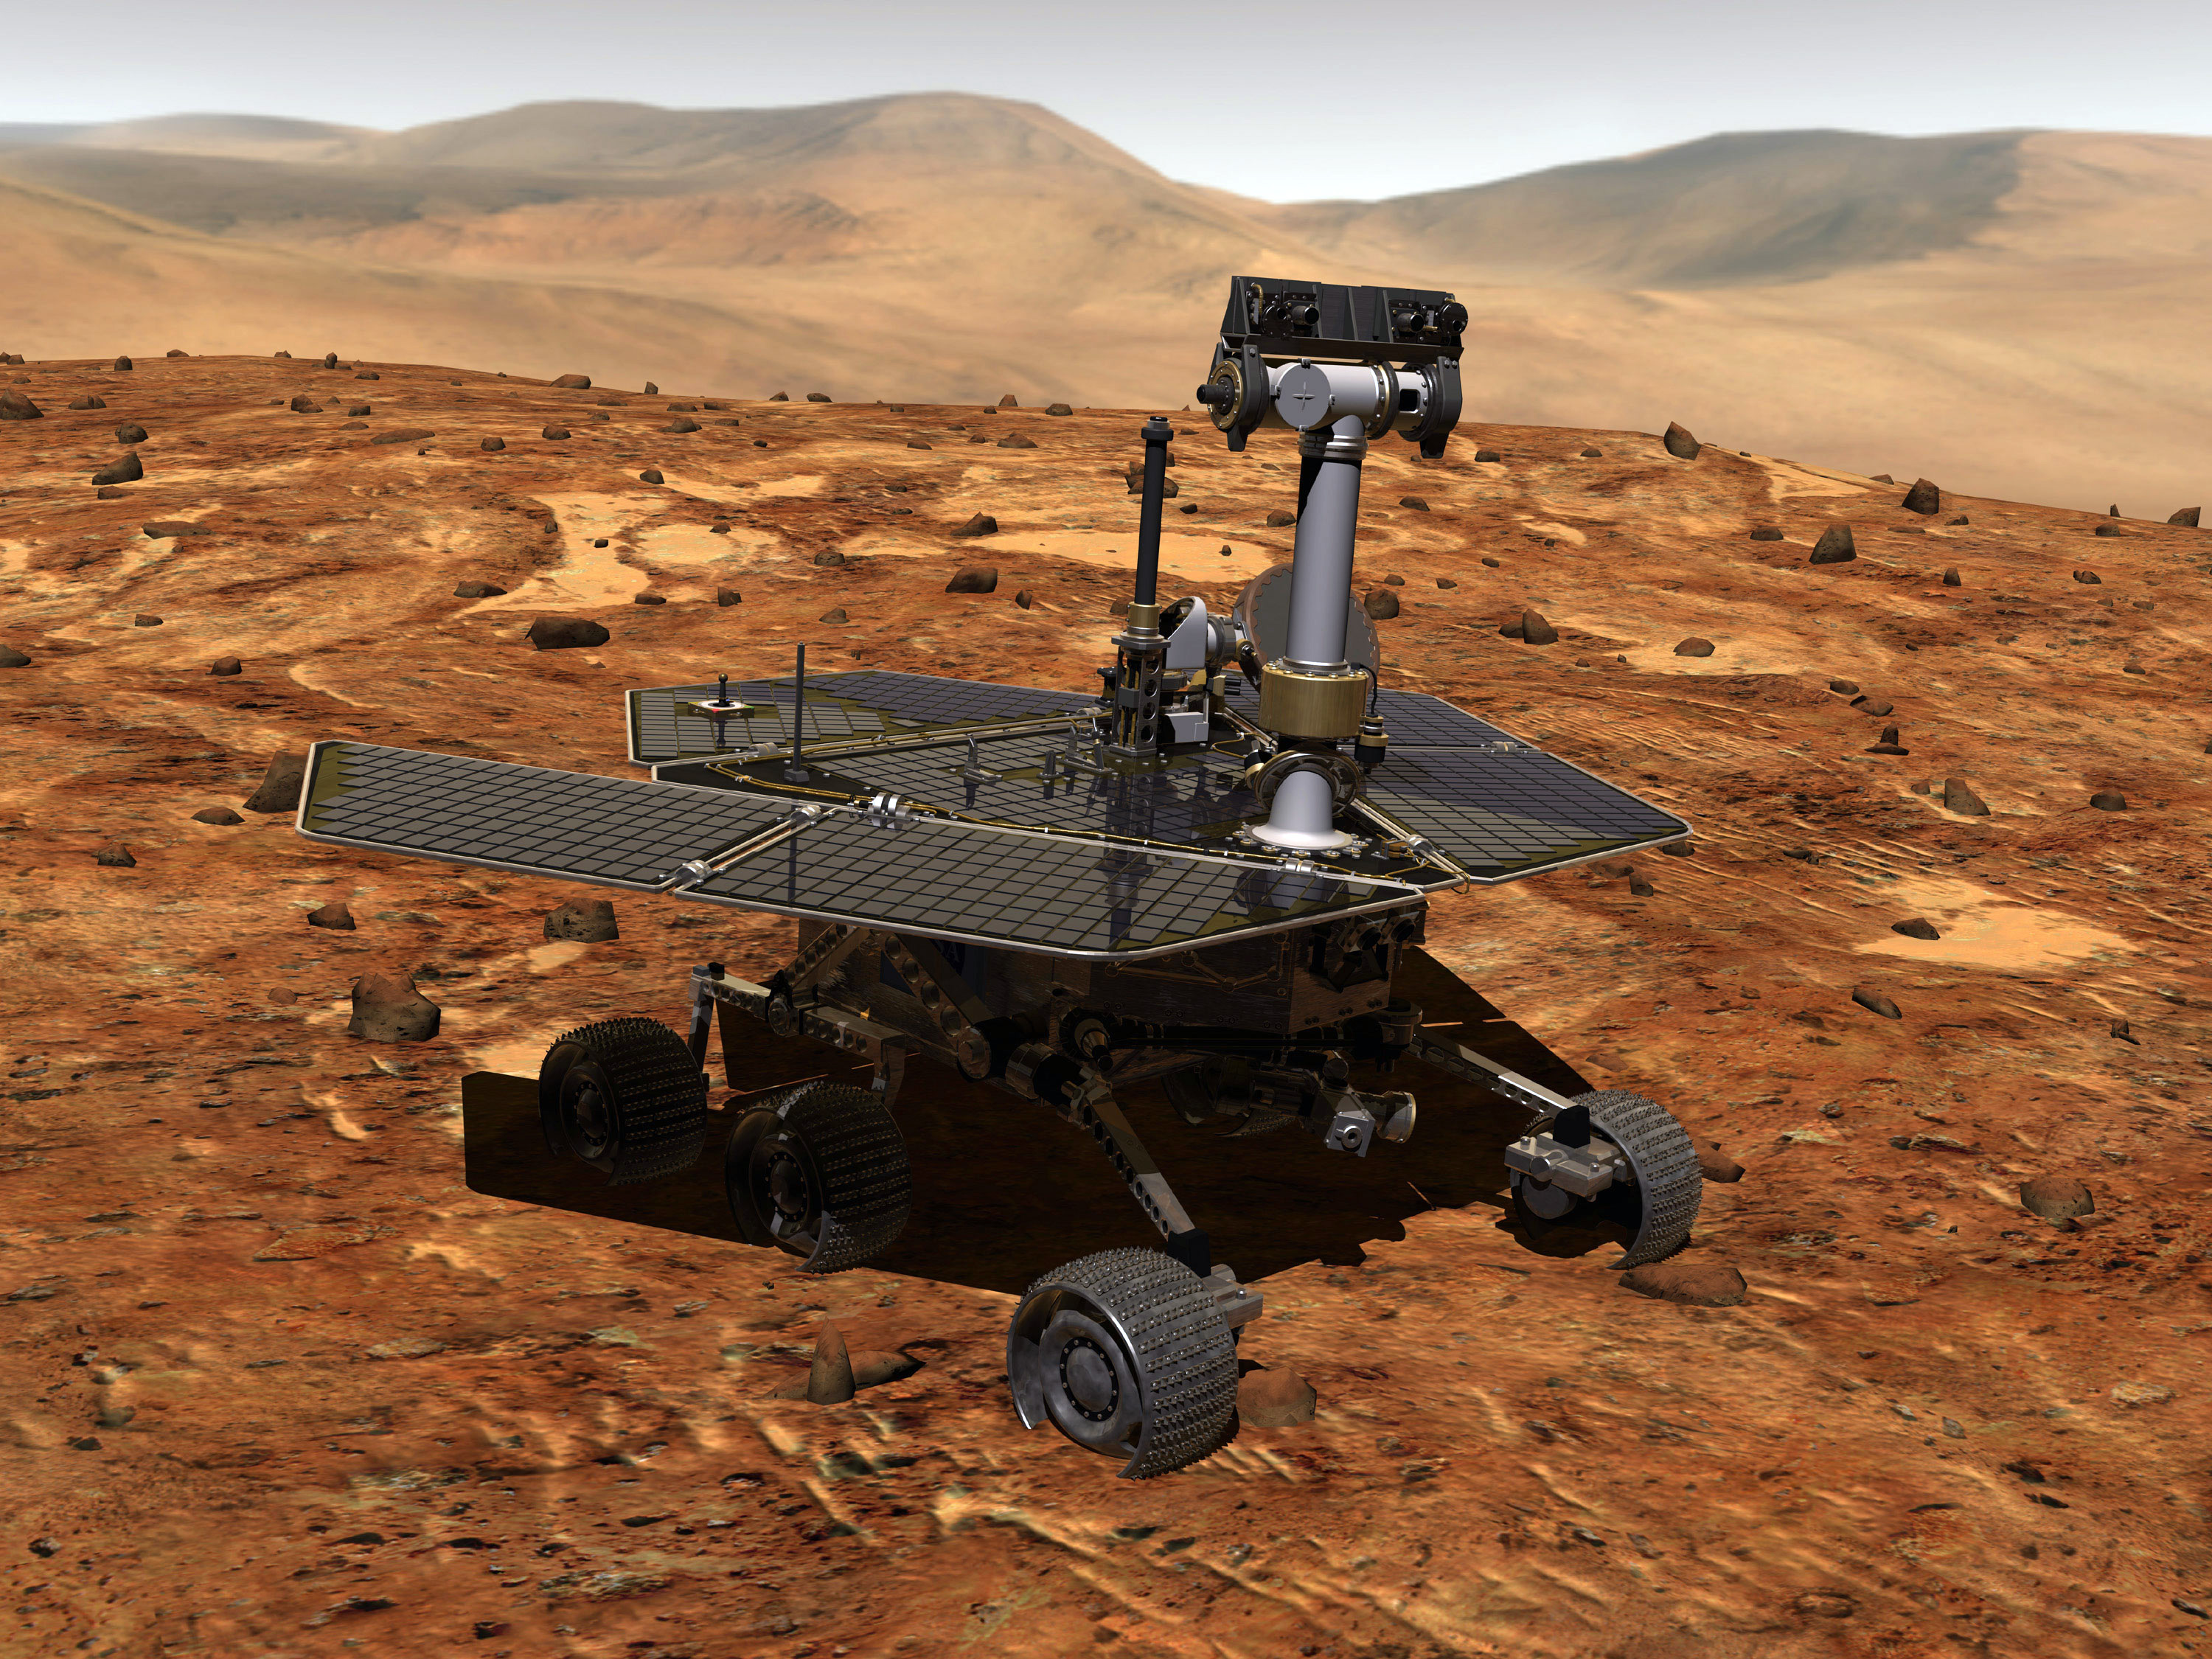 An artist's concept portrays a NASA Mars Exploration Rover (Opportunity) on the surface of Mars.